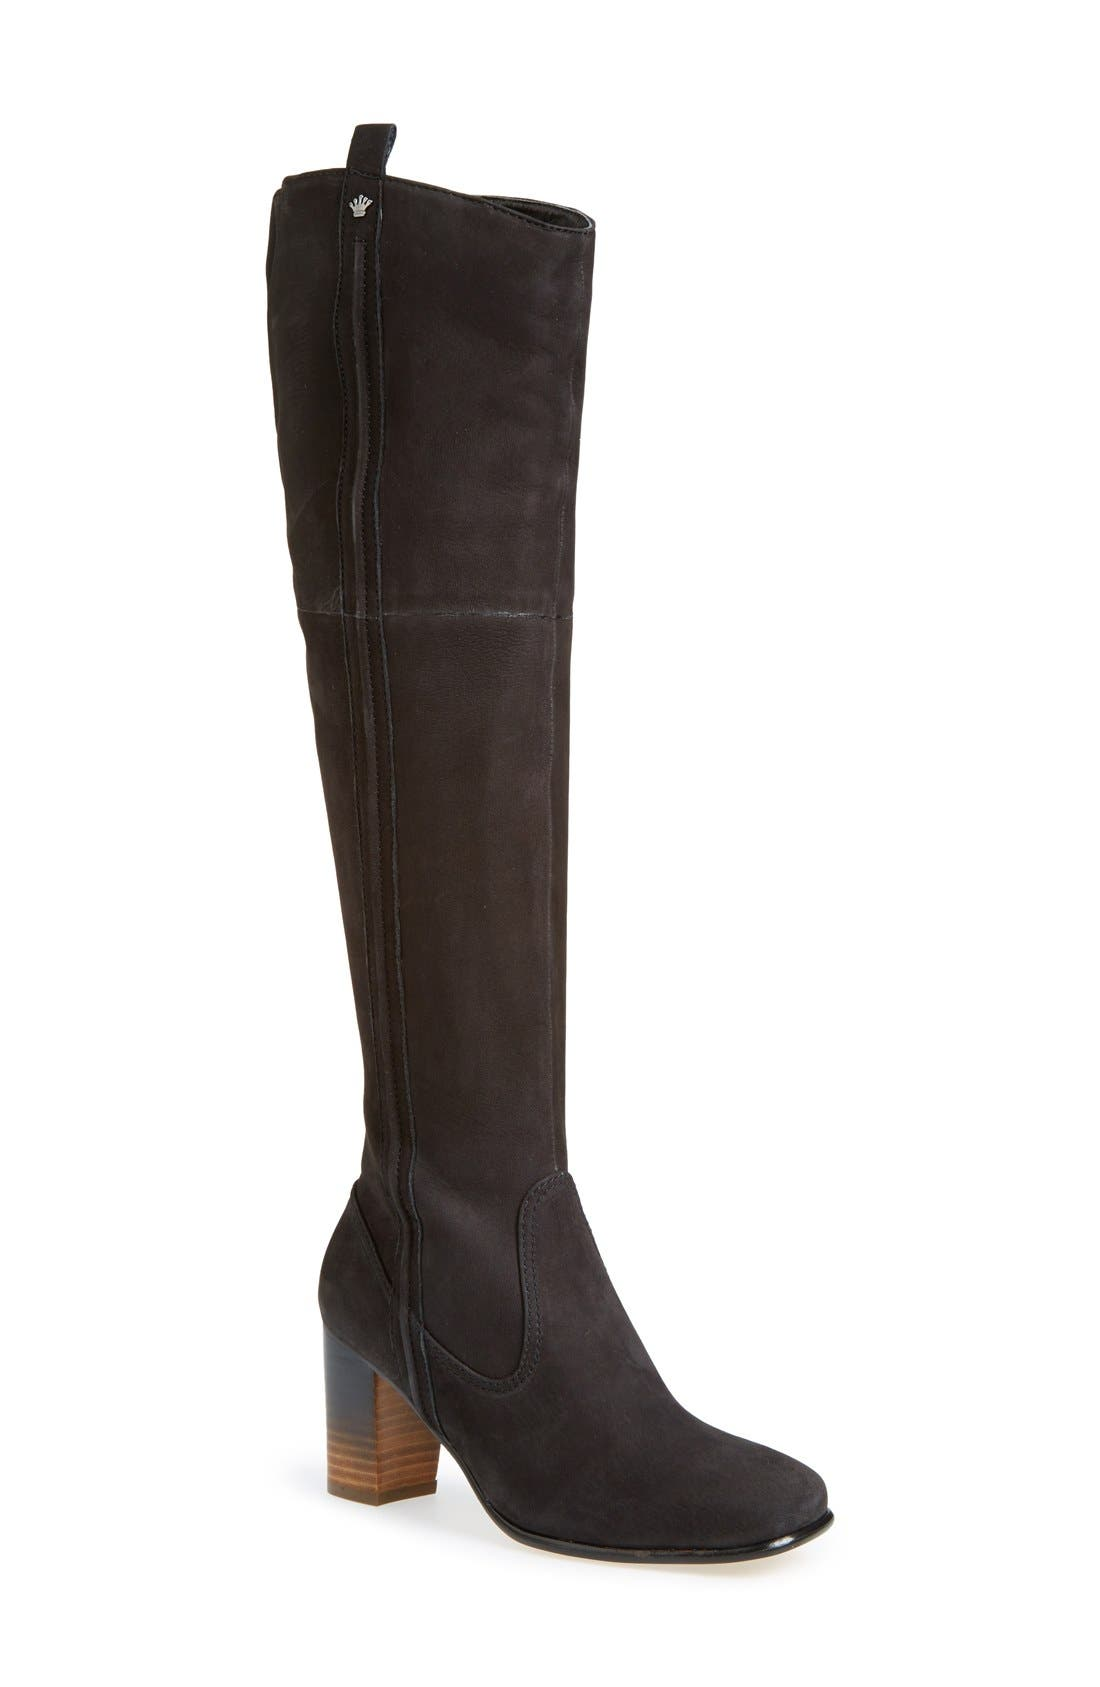 'Ventura' Over the Knee Boot,                             Main thumbnail 1, color,                             001